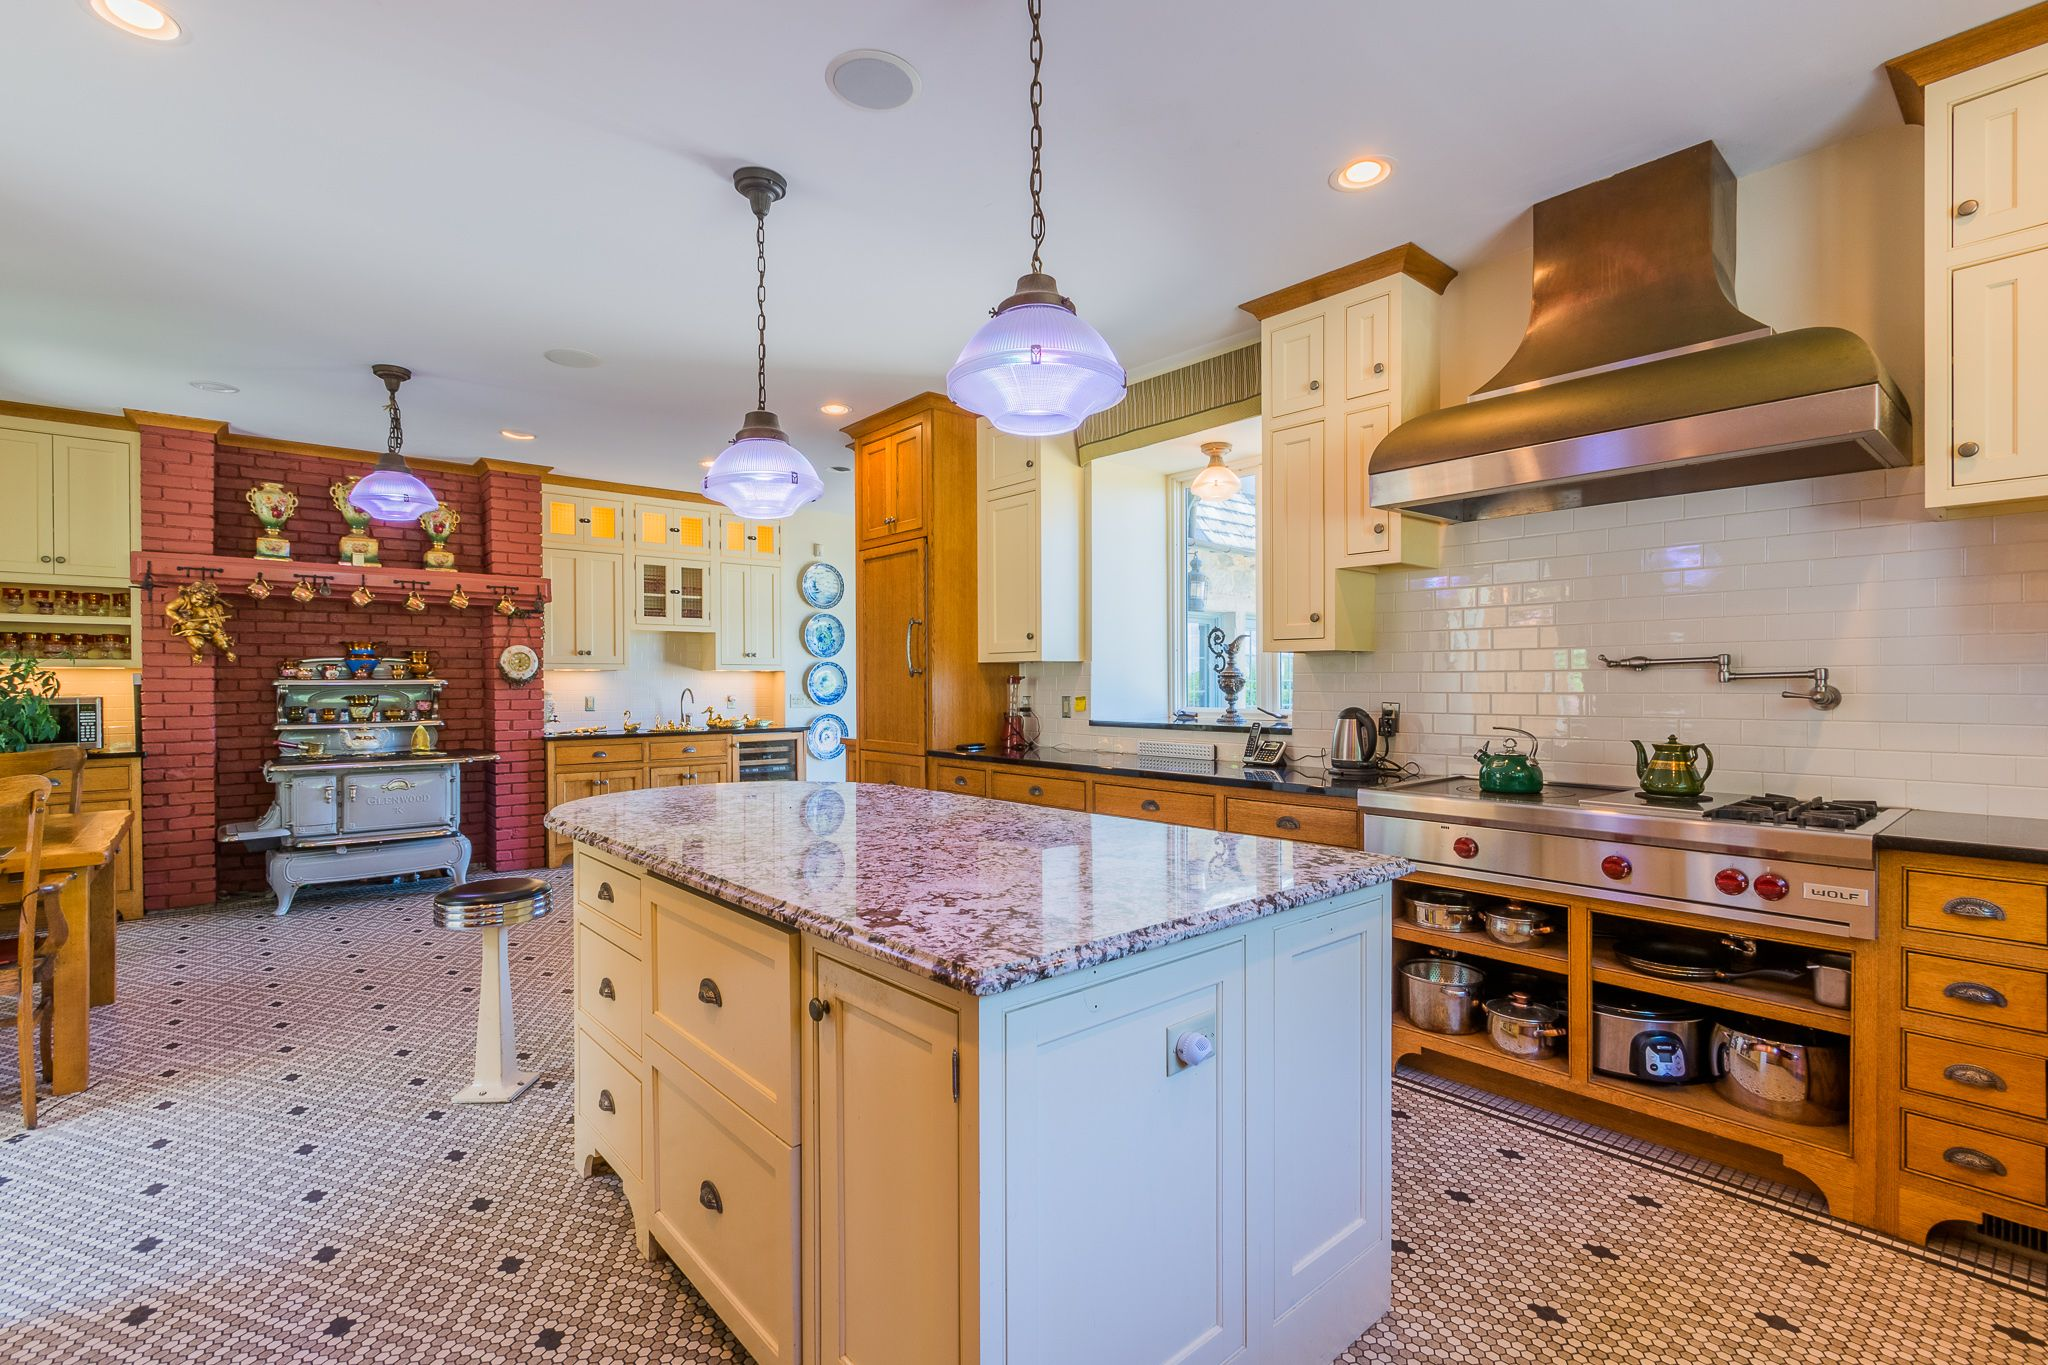 Extravagant Cozy And Modern Built Kitchen While Maintaining A Classy Aesthetic Www Buyexecutive Com Lis Brick Interior Brick Interior Wall The Hamptons